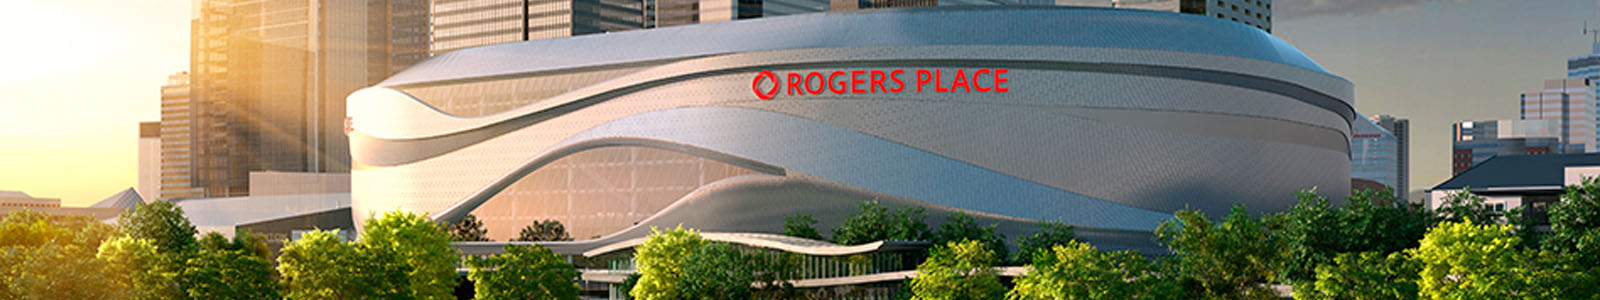 rogers place edmonton downtown ice district